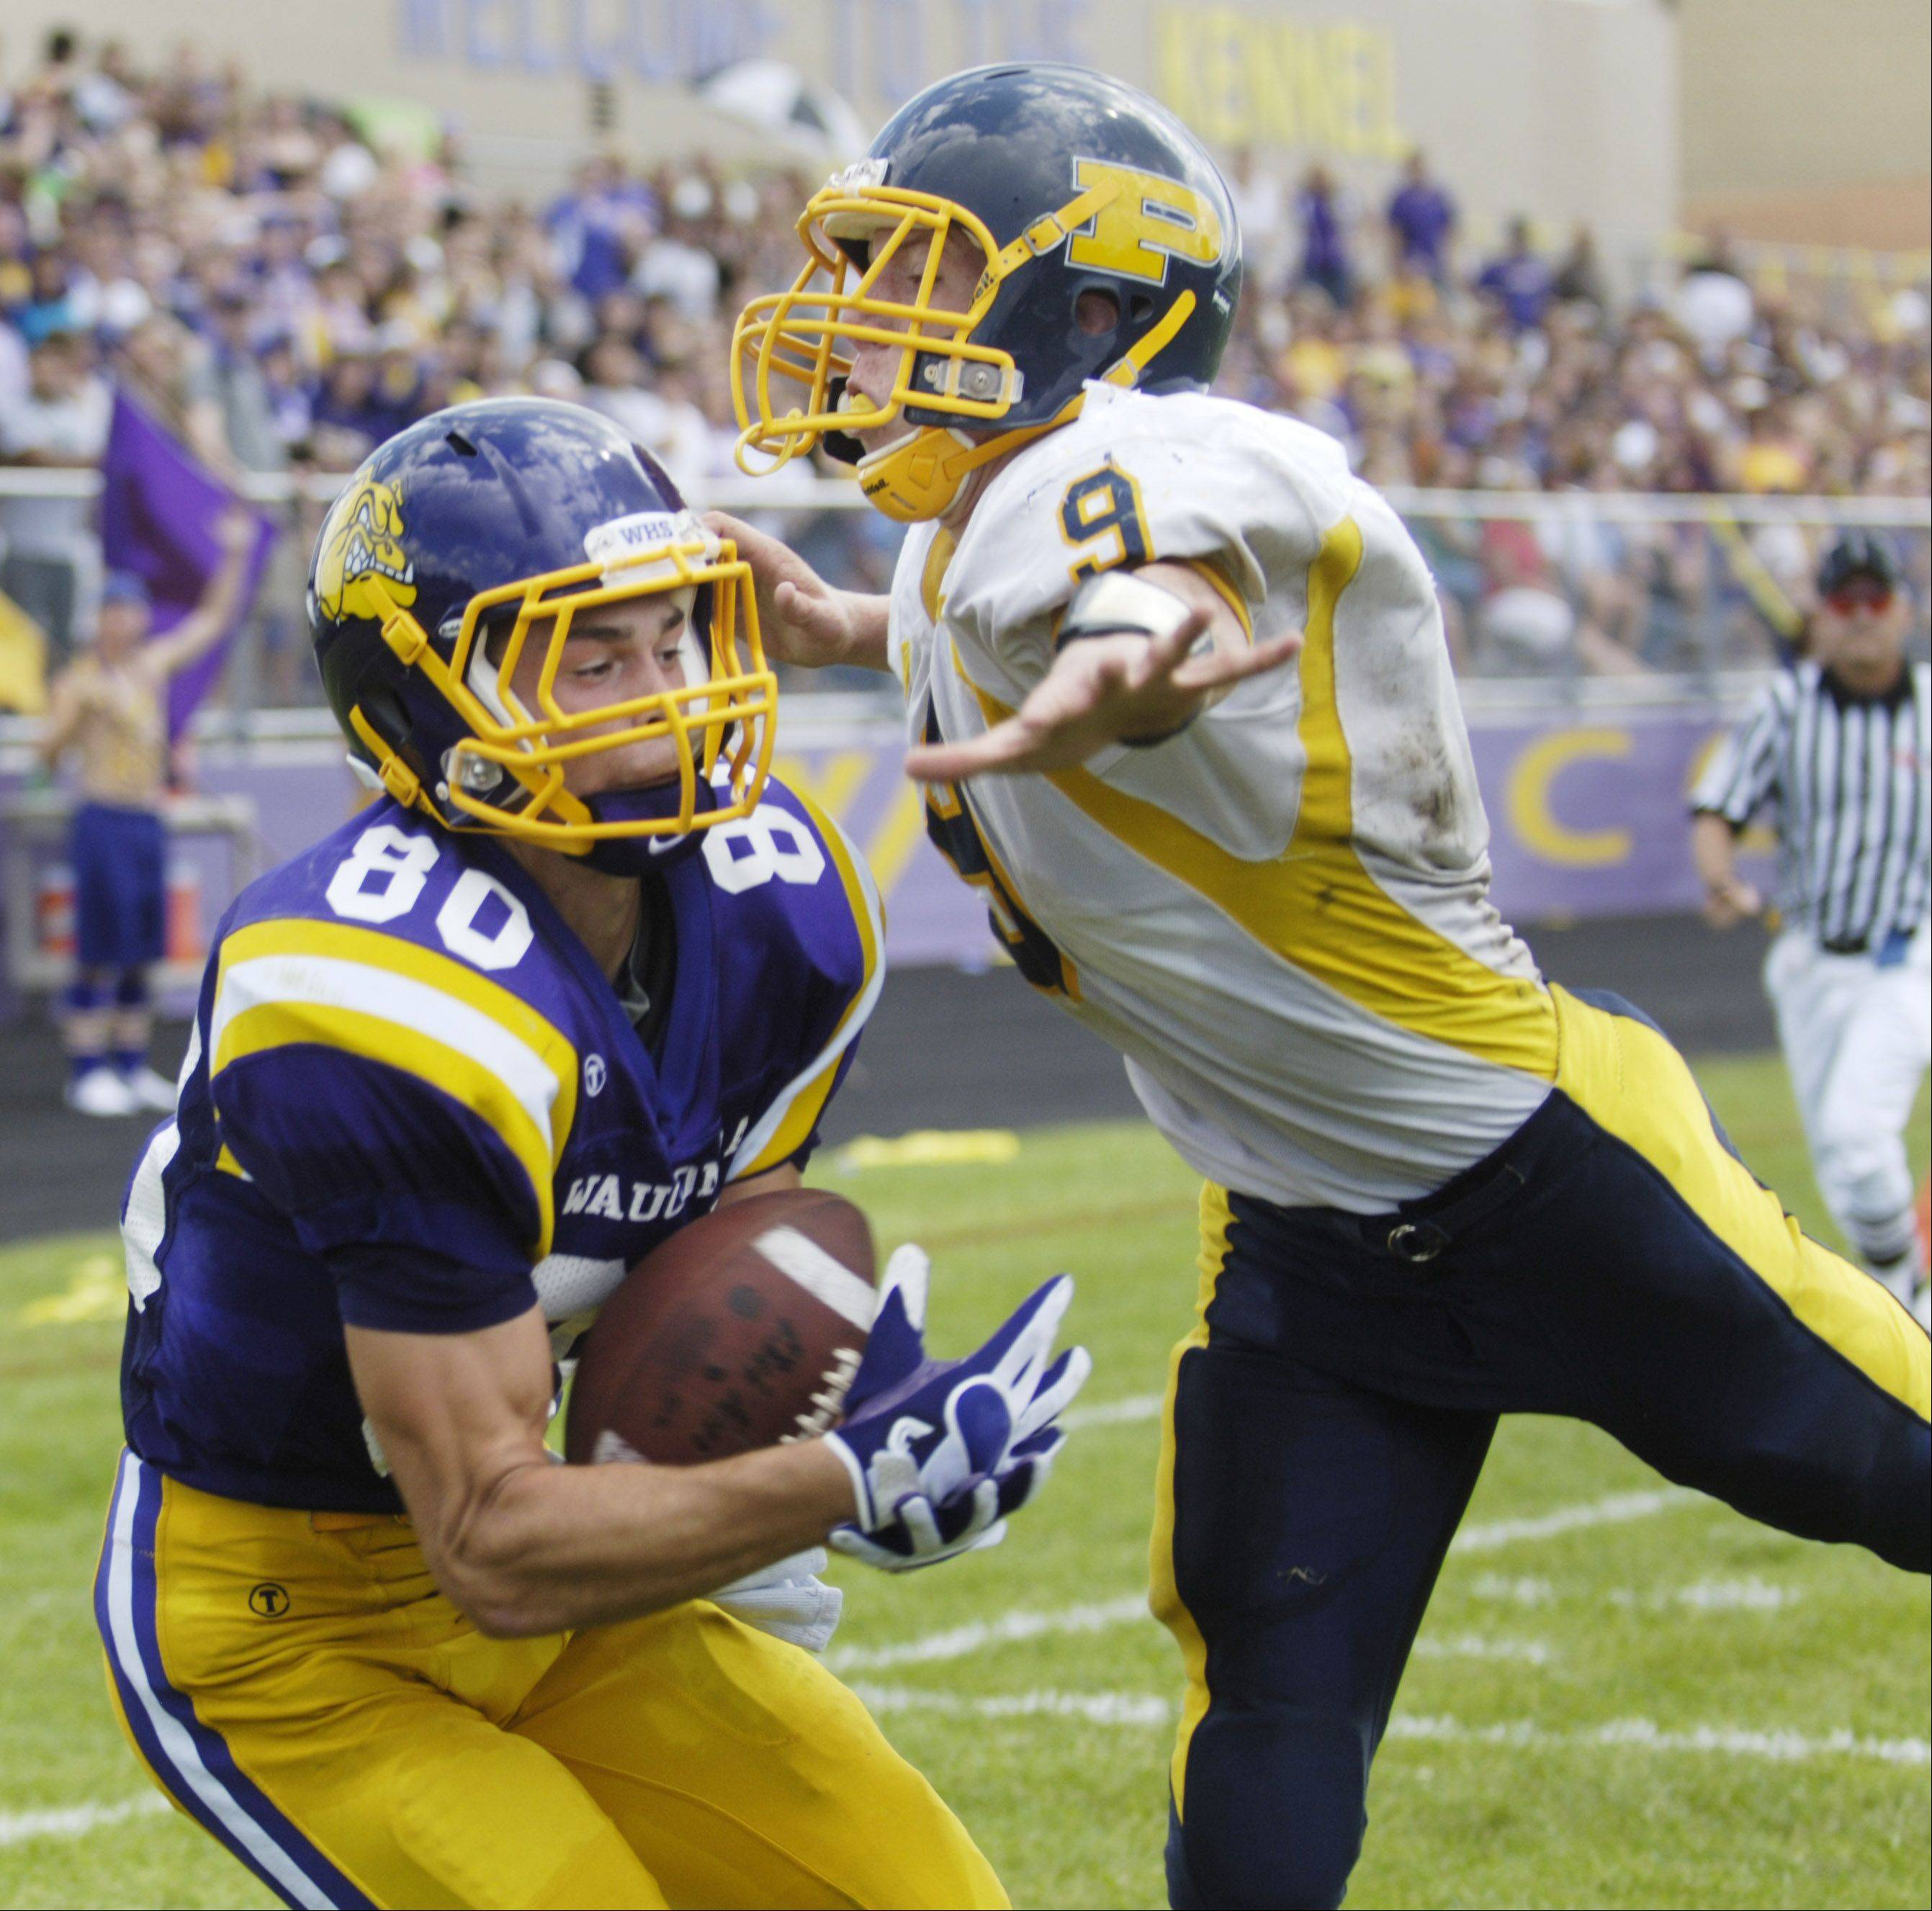 Wauconda�s Jake Ziolkowski catches a touchdown pass in the end zone just past the outstretched hand of Round Lake�s Anthony Burton on Saturday.